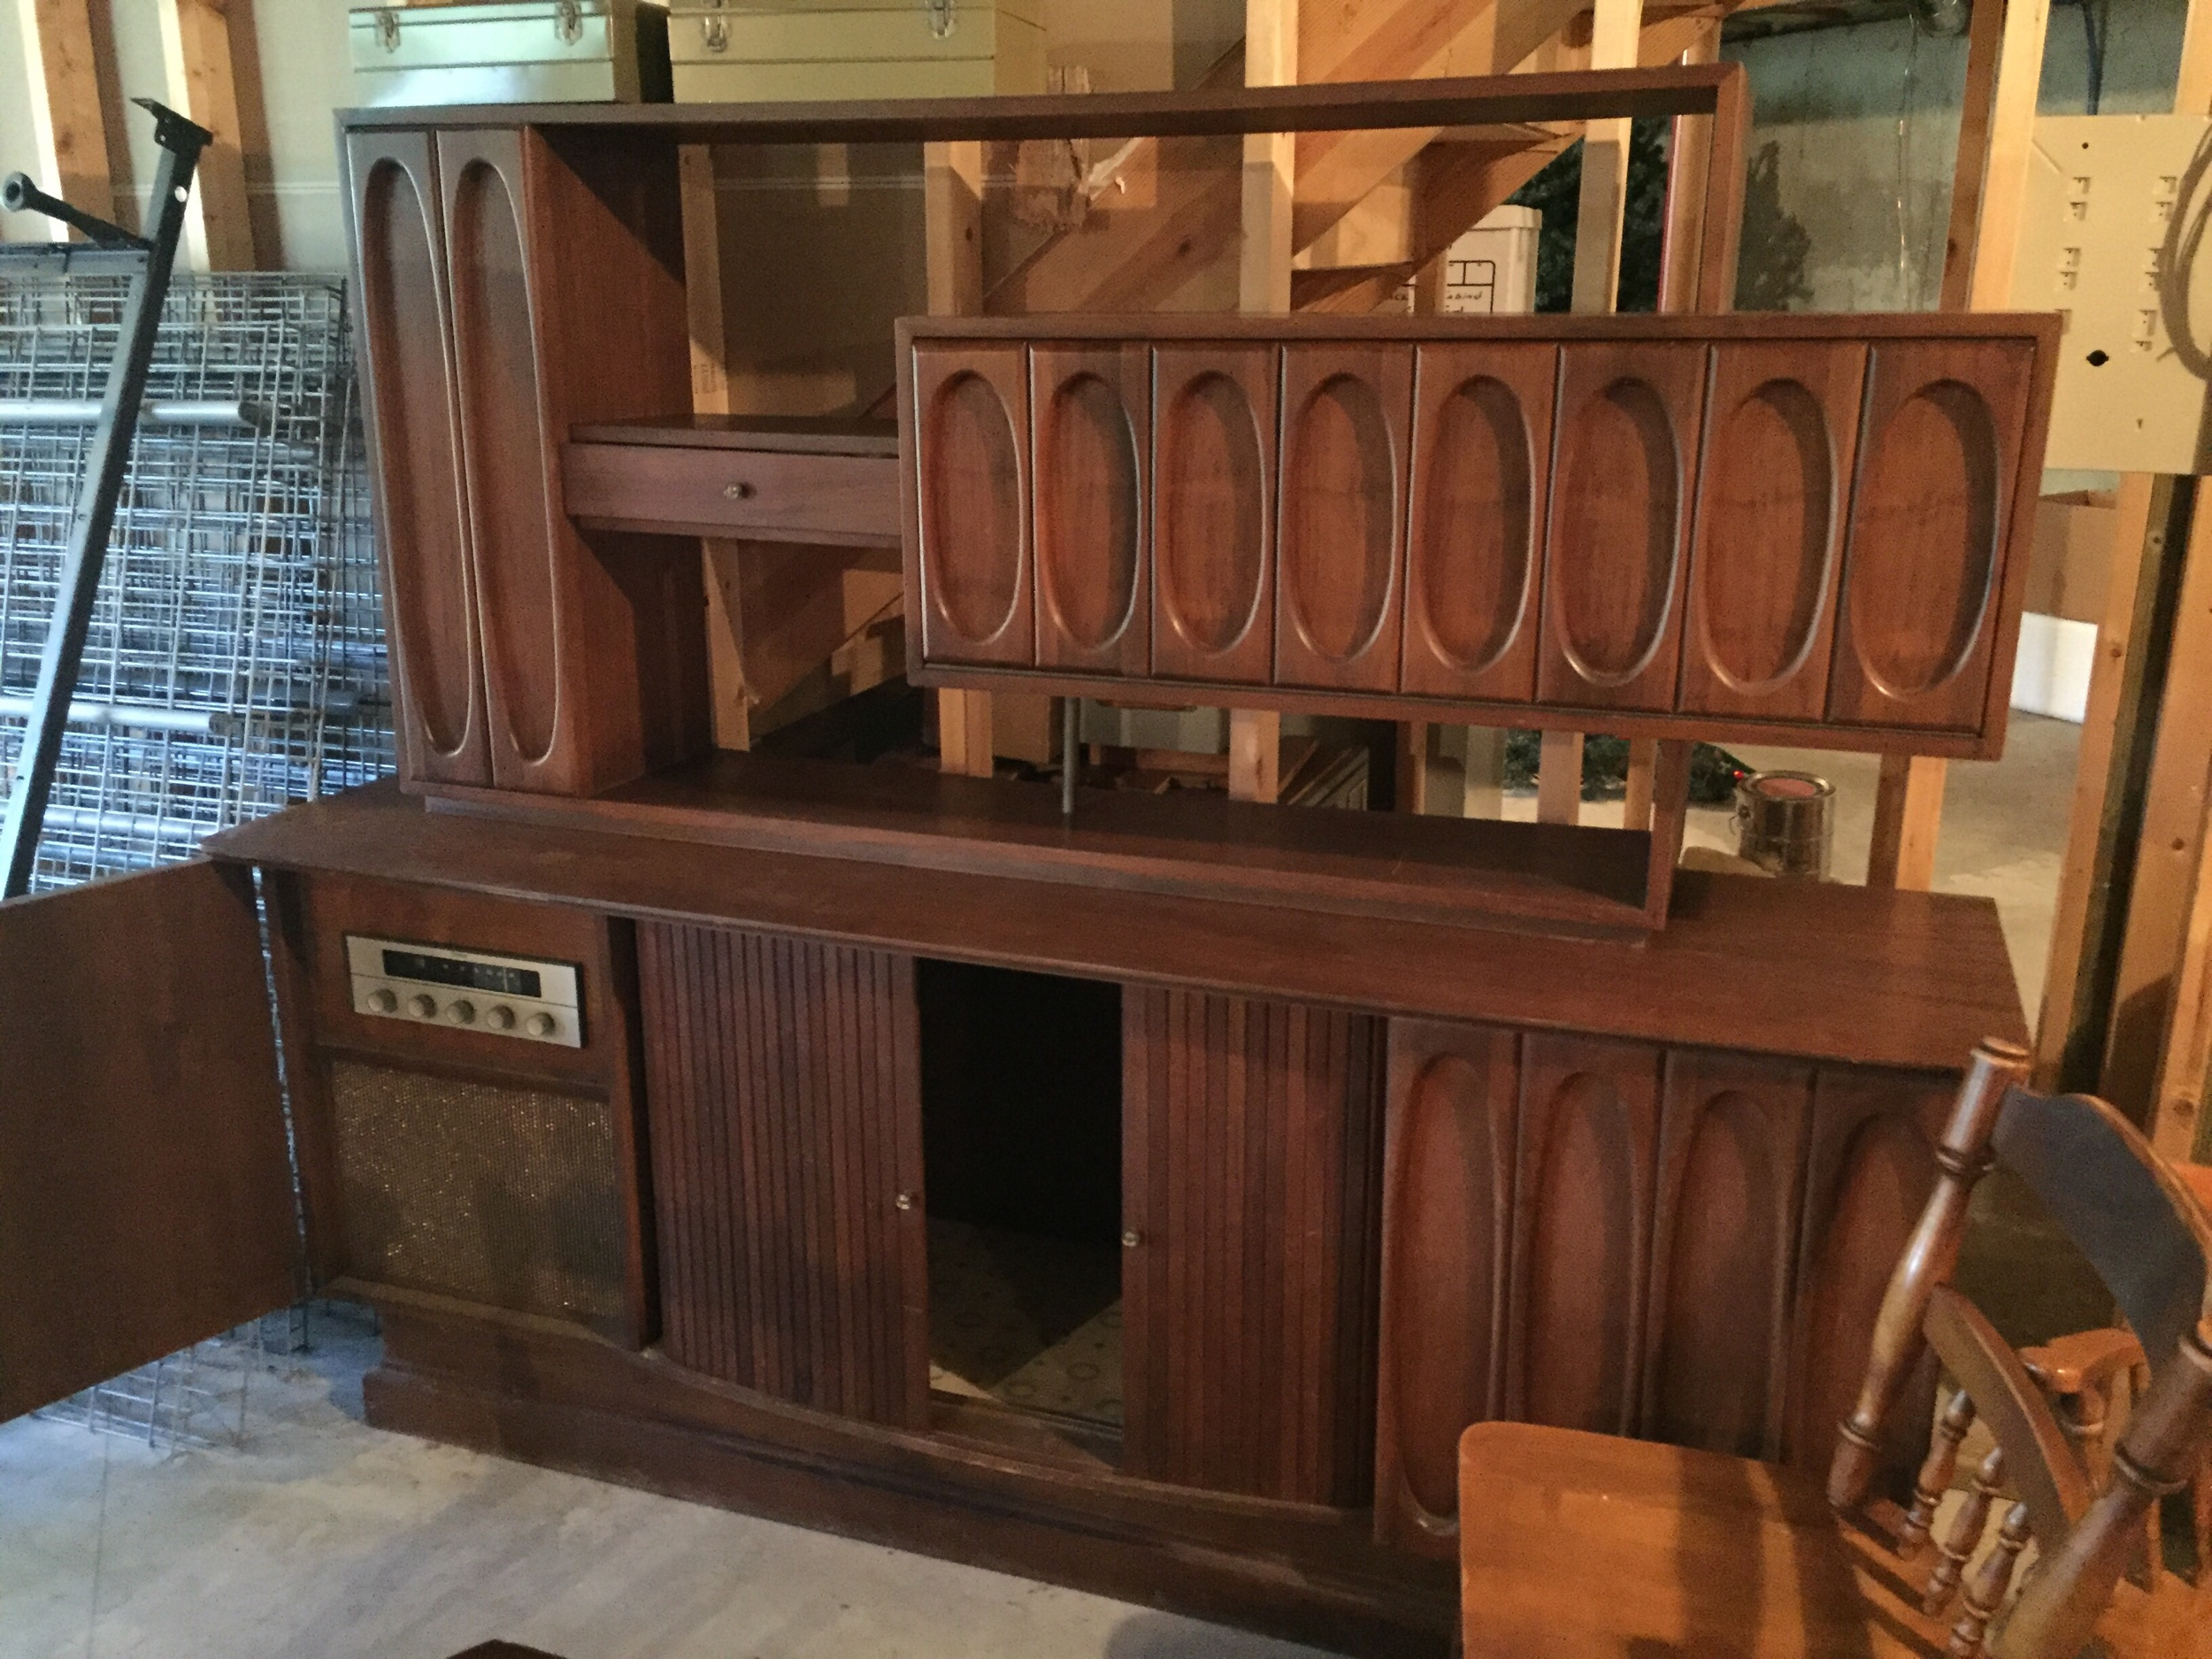 Amazing Walnut custom entertainment unit. This features built in speakers and receiver, pUll out for turntAble, tambour doors. The top cabinet has a bar area! I can't wait to get it home and cleaned up., test the audio equipmenT and report back. It is a 2 pc unit.